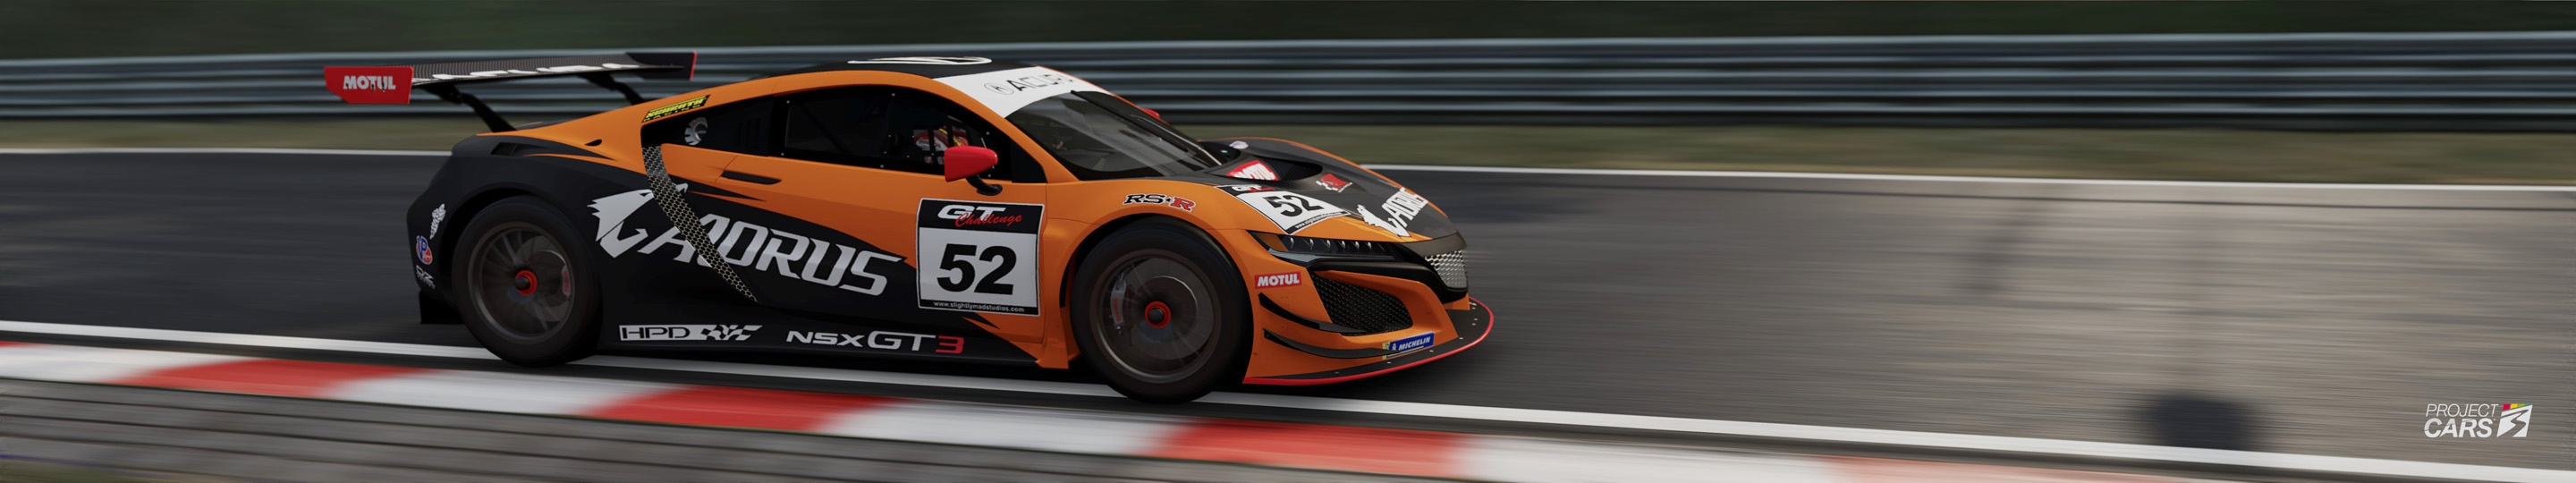 1a PROJECT CARS 3 GT3 at NORDSCHLEIFE copy.jpg